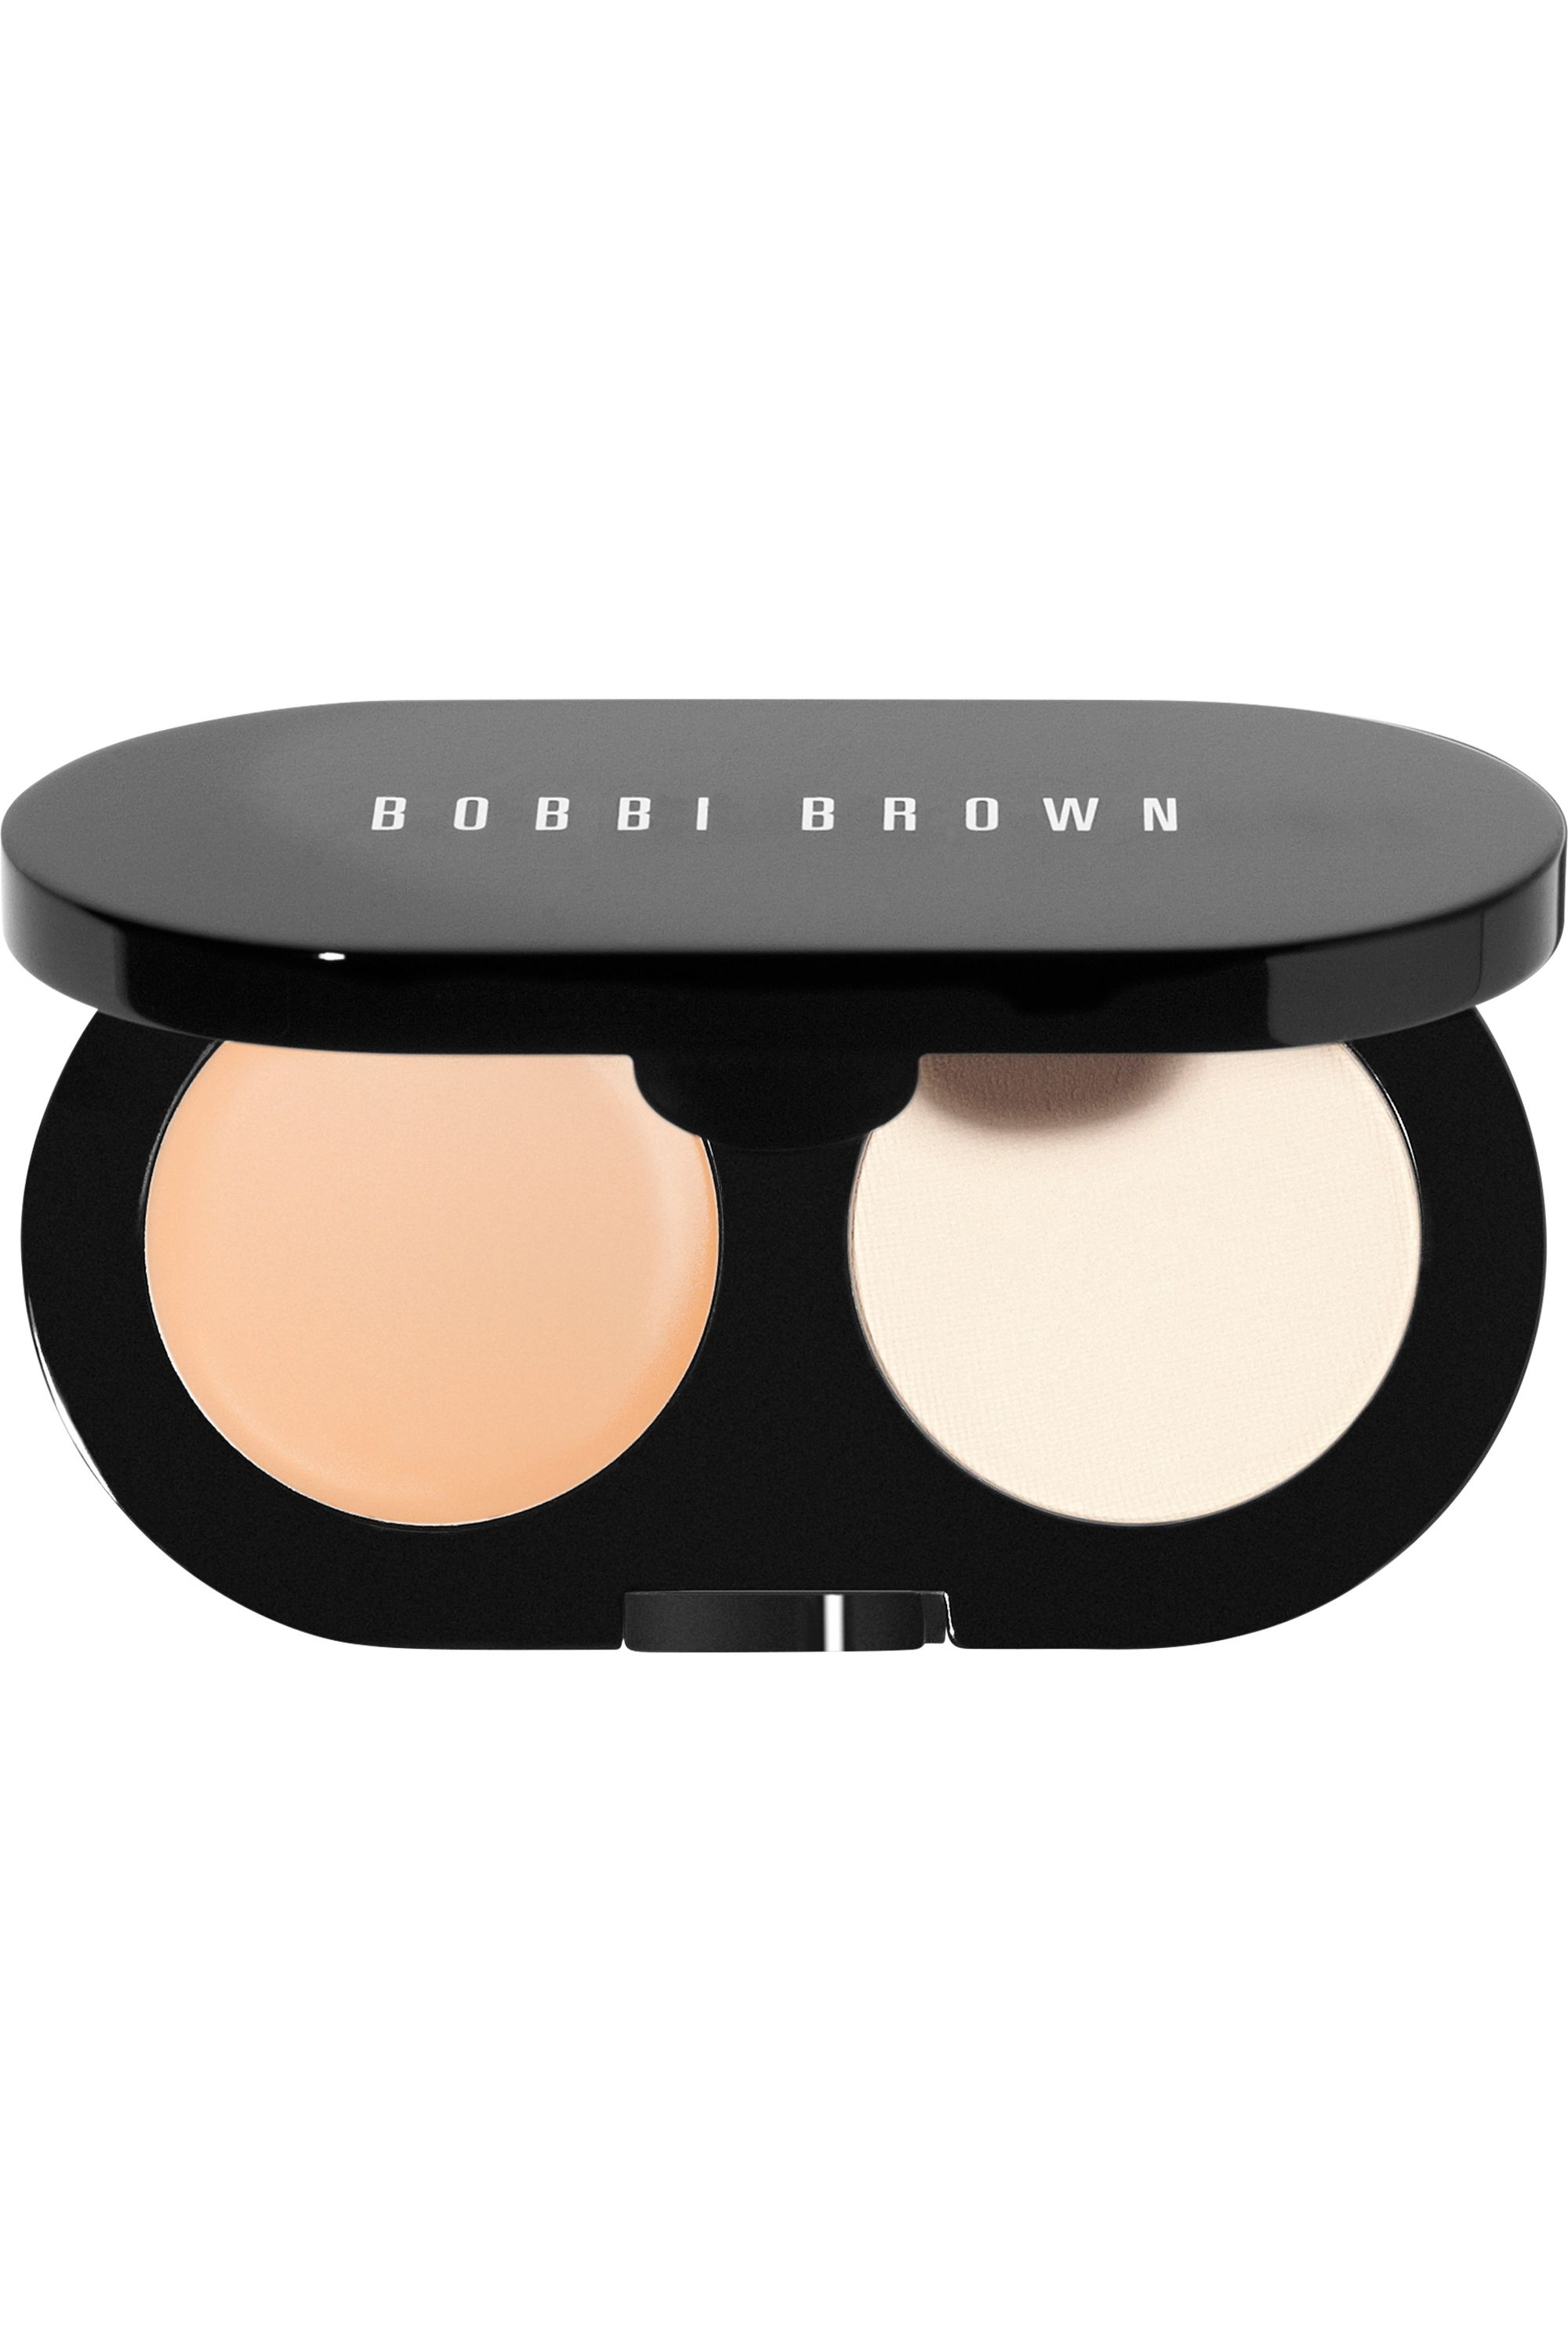 Blissim : Bobbi Brown - Kit anti-cernes Creamy Concealer Kit - Porcelain